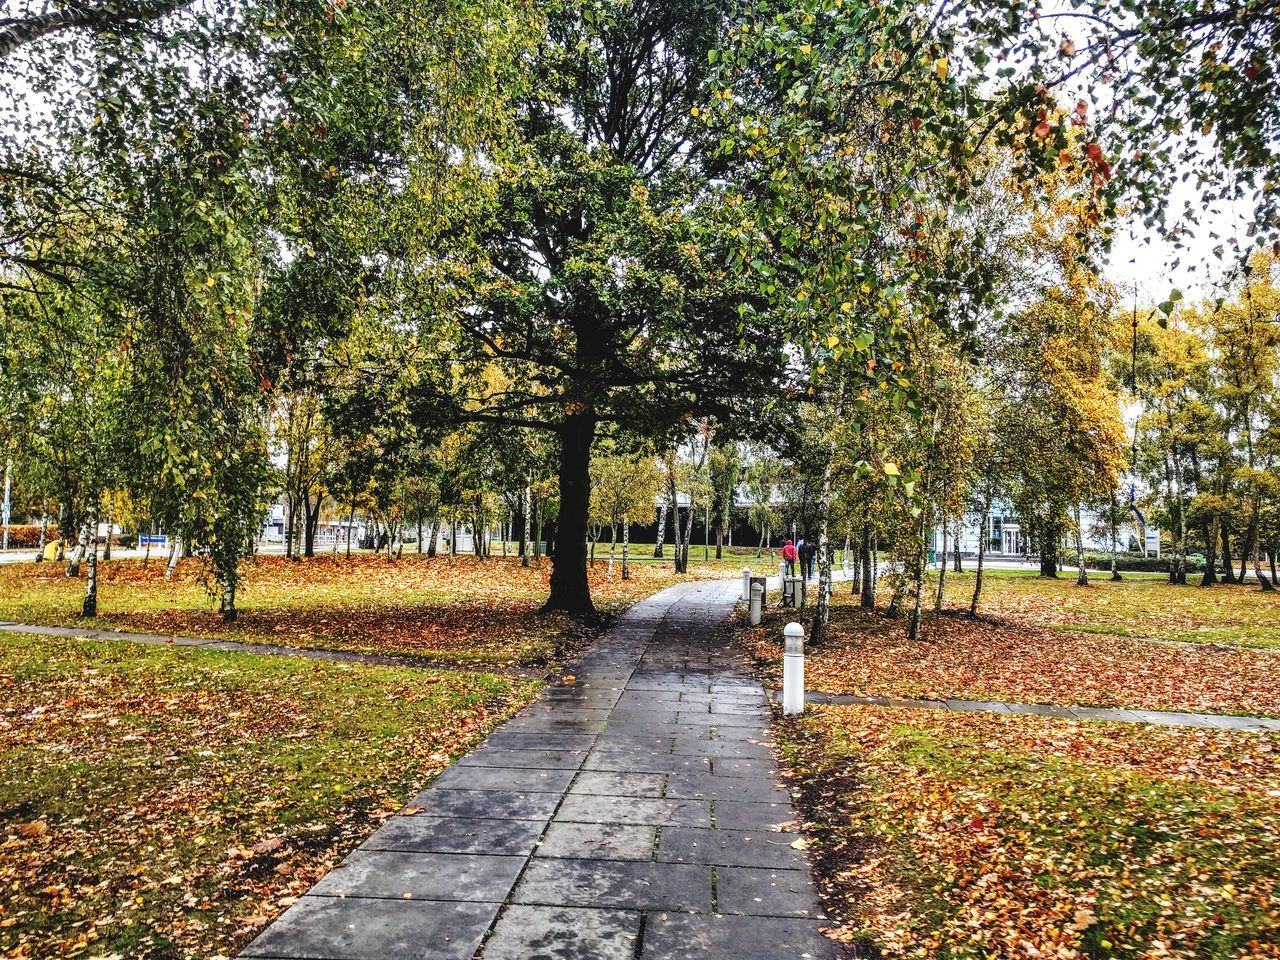 tree, autumn, leaf, change, nature, the way forward, day, outdoors, tranquility, beauty in nature, tranquil scene, scenics, growth, park - man made space, grass, no people, tree trunk, walkway, branch, sky